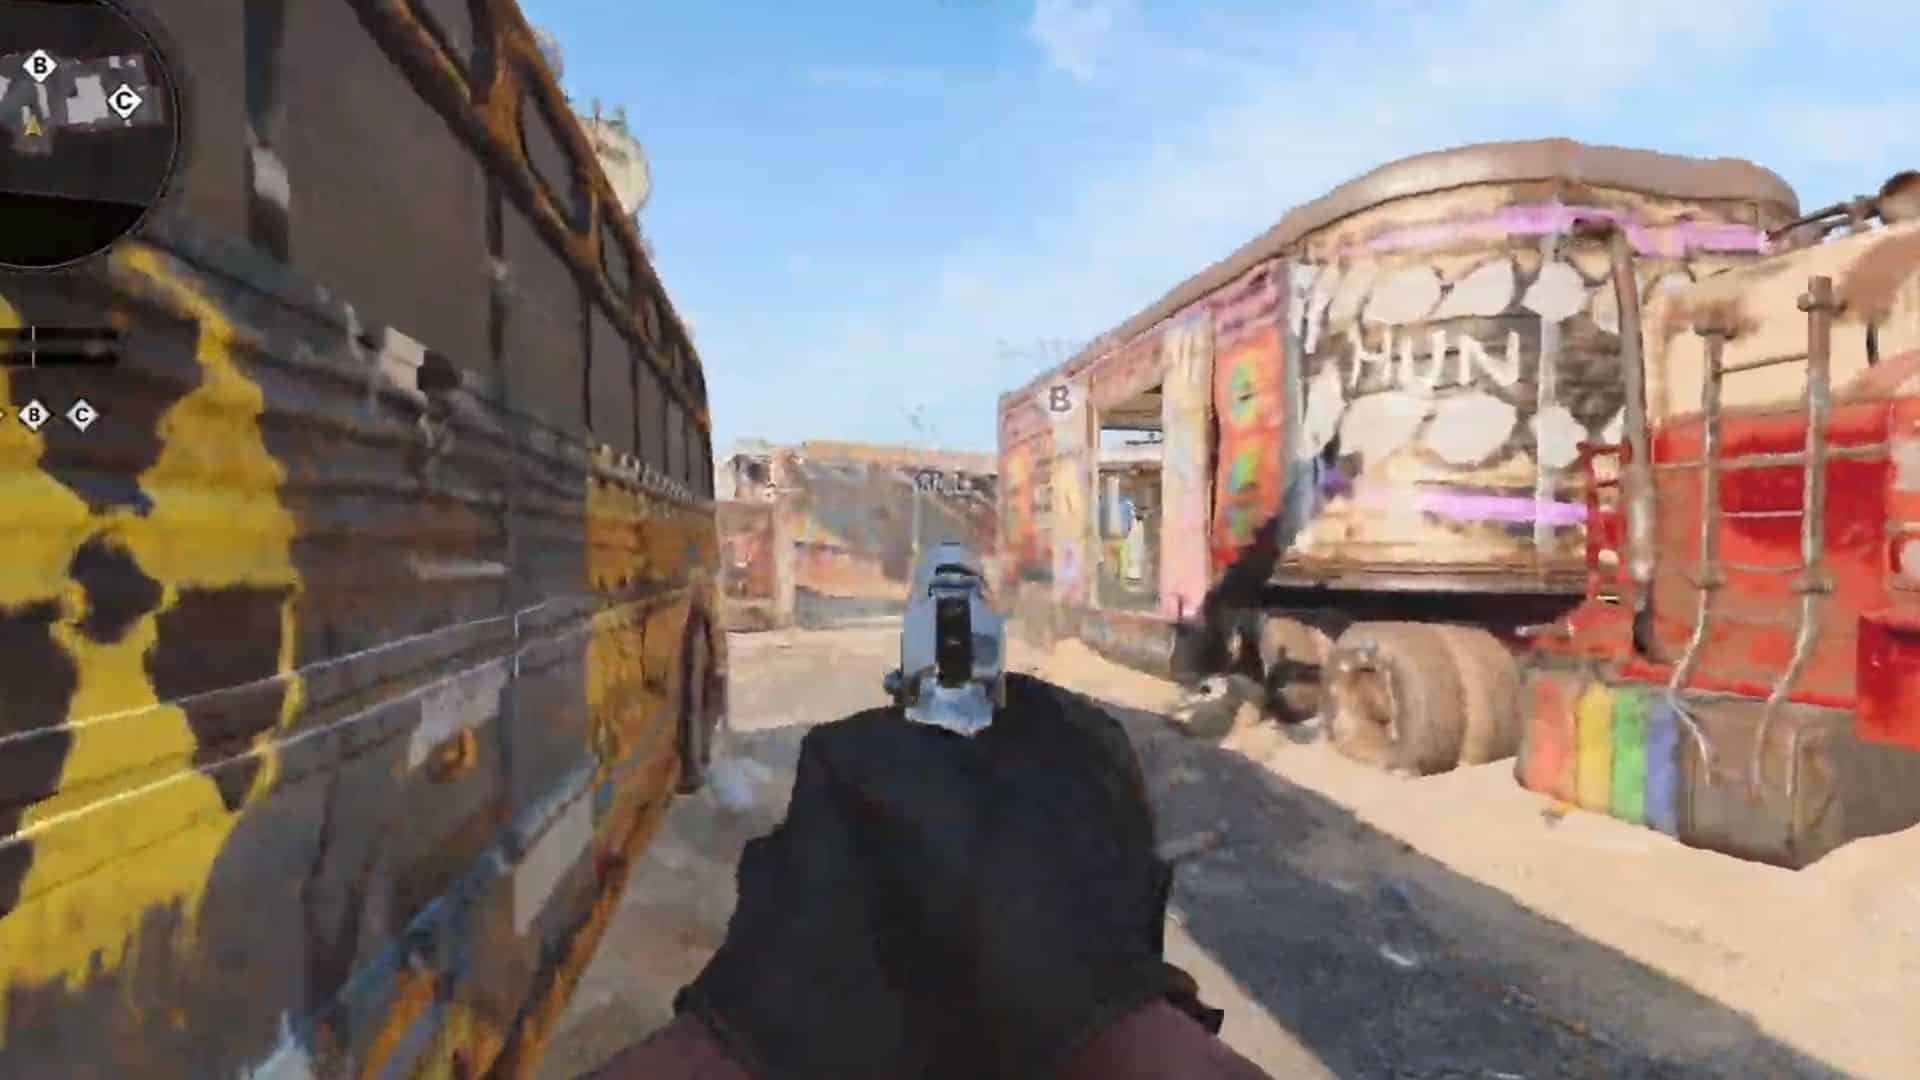 the middle of nuketown 84 in bocw